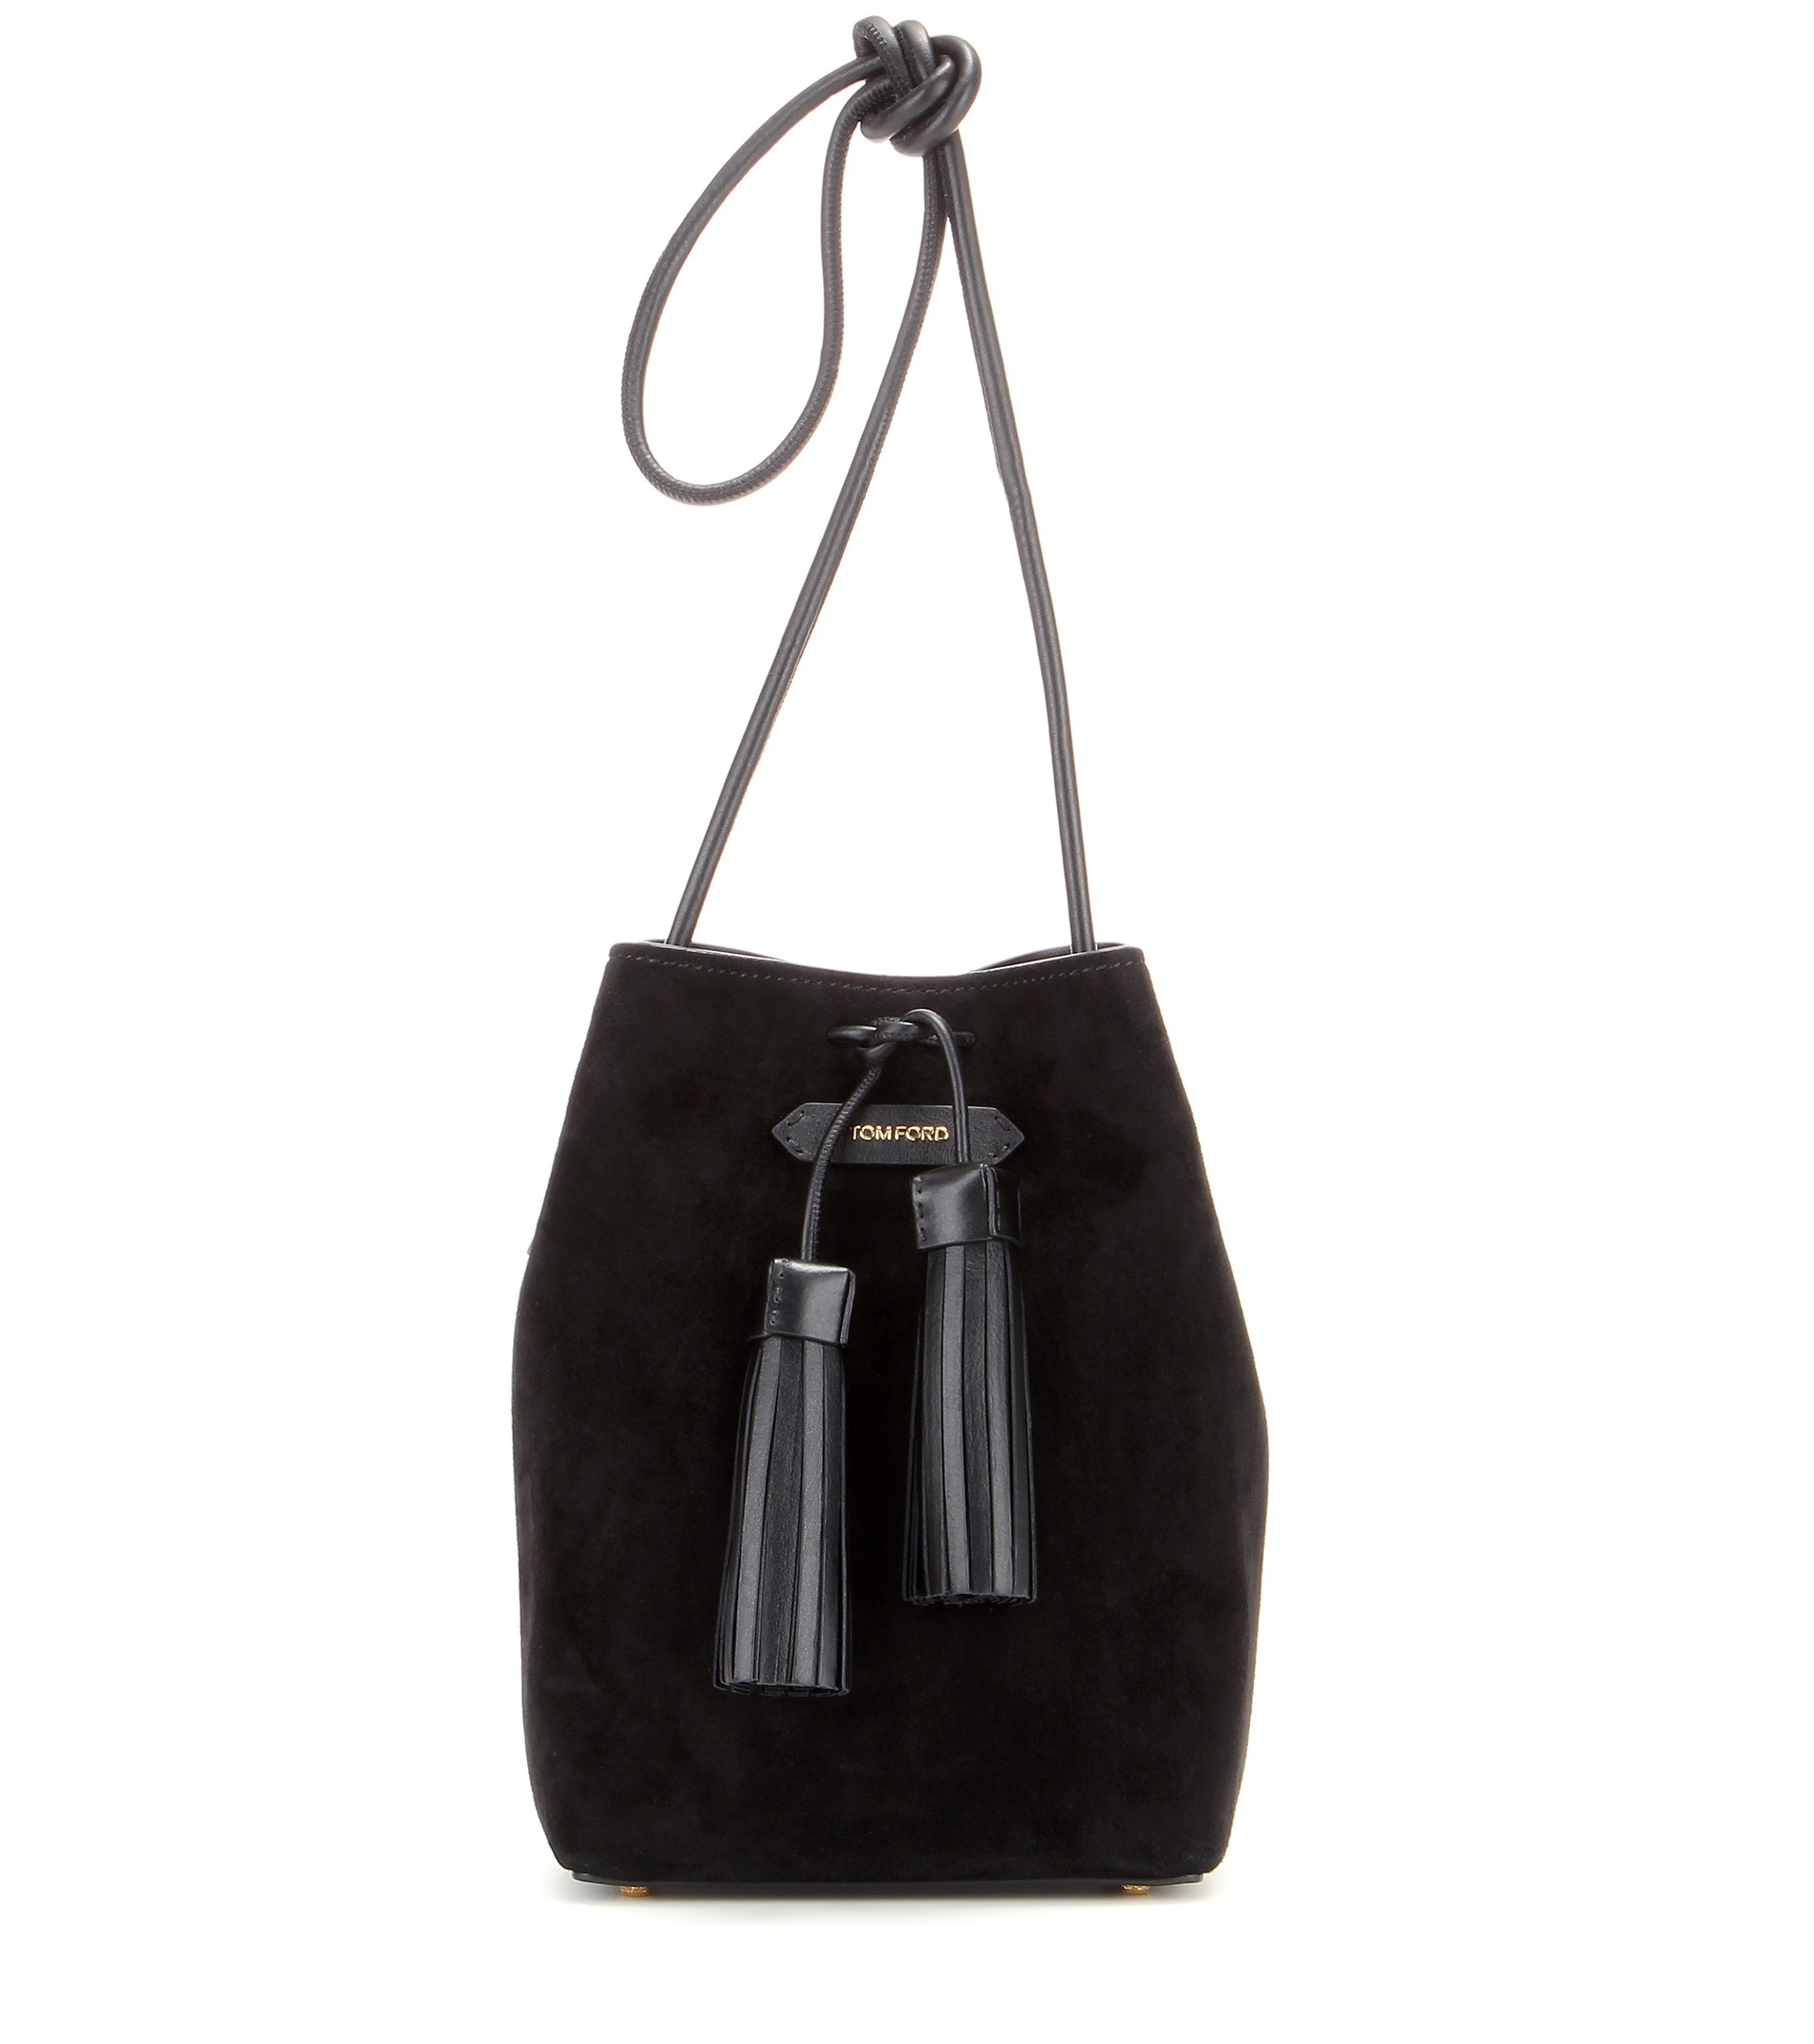 Tom ford Mytheresa. Com Exclusive Bucket Small Suede Bucket Bag in ...